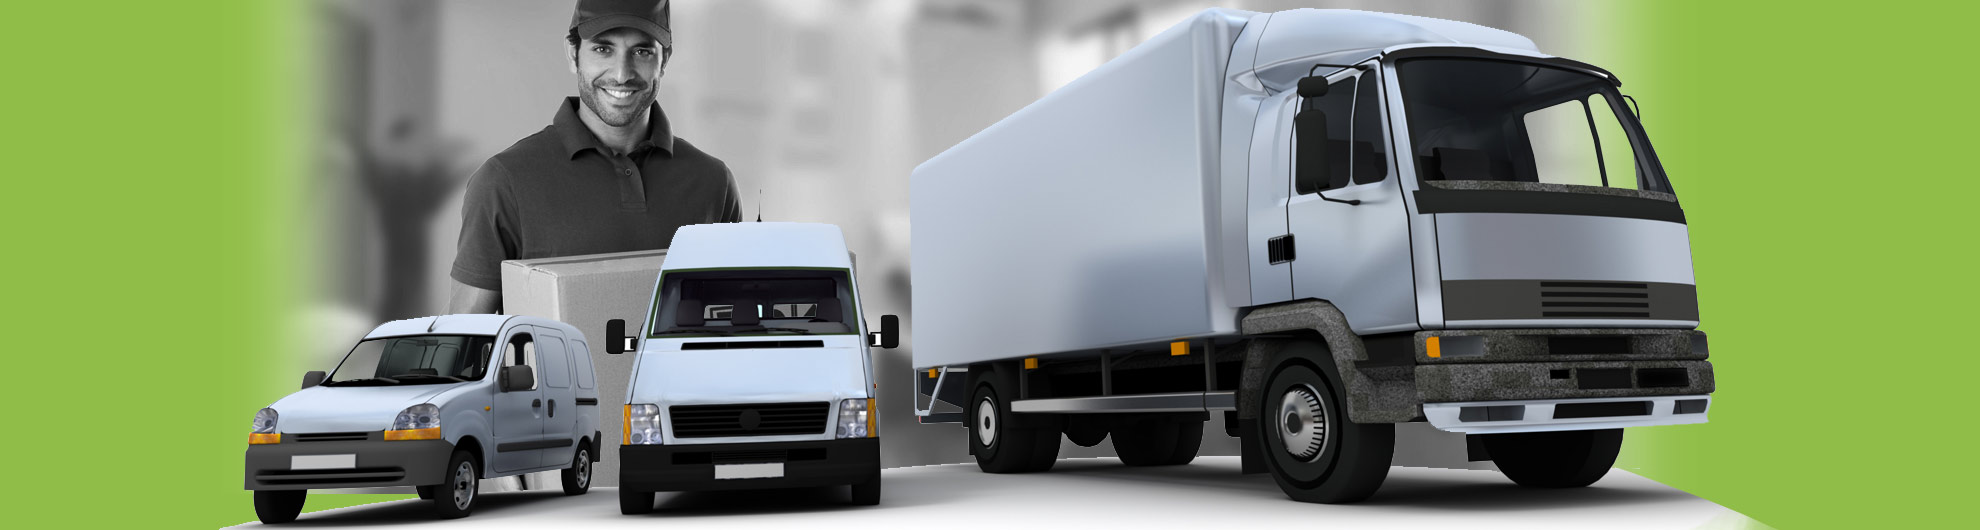 Petroupoli  International Movers - Shipping Companies